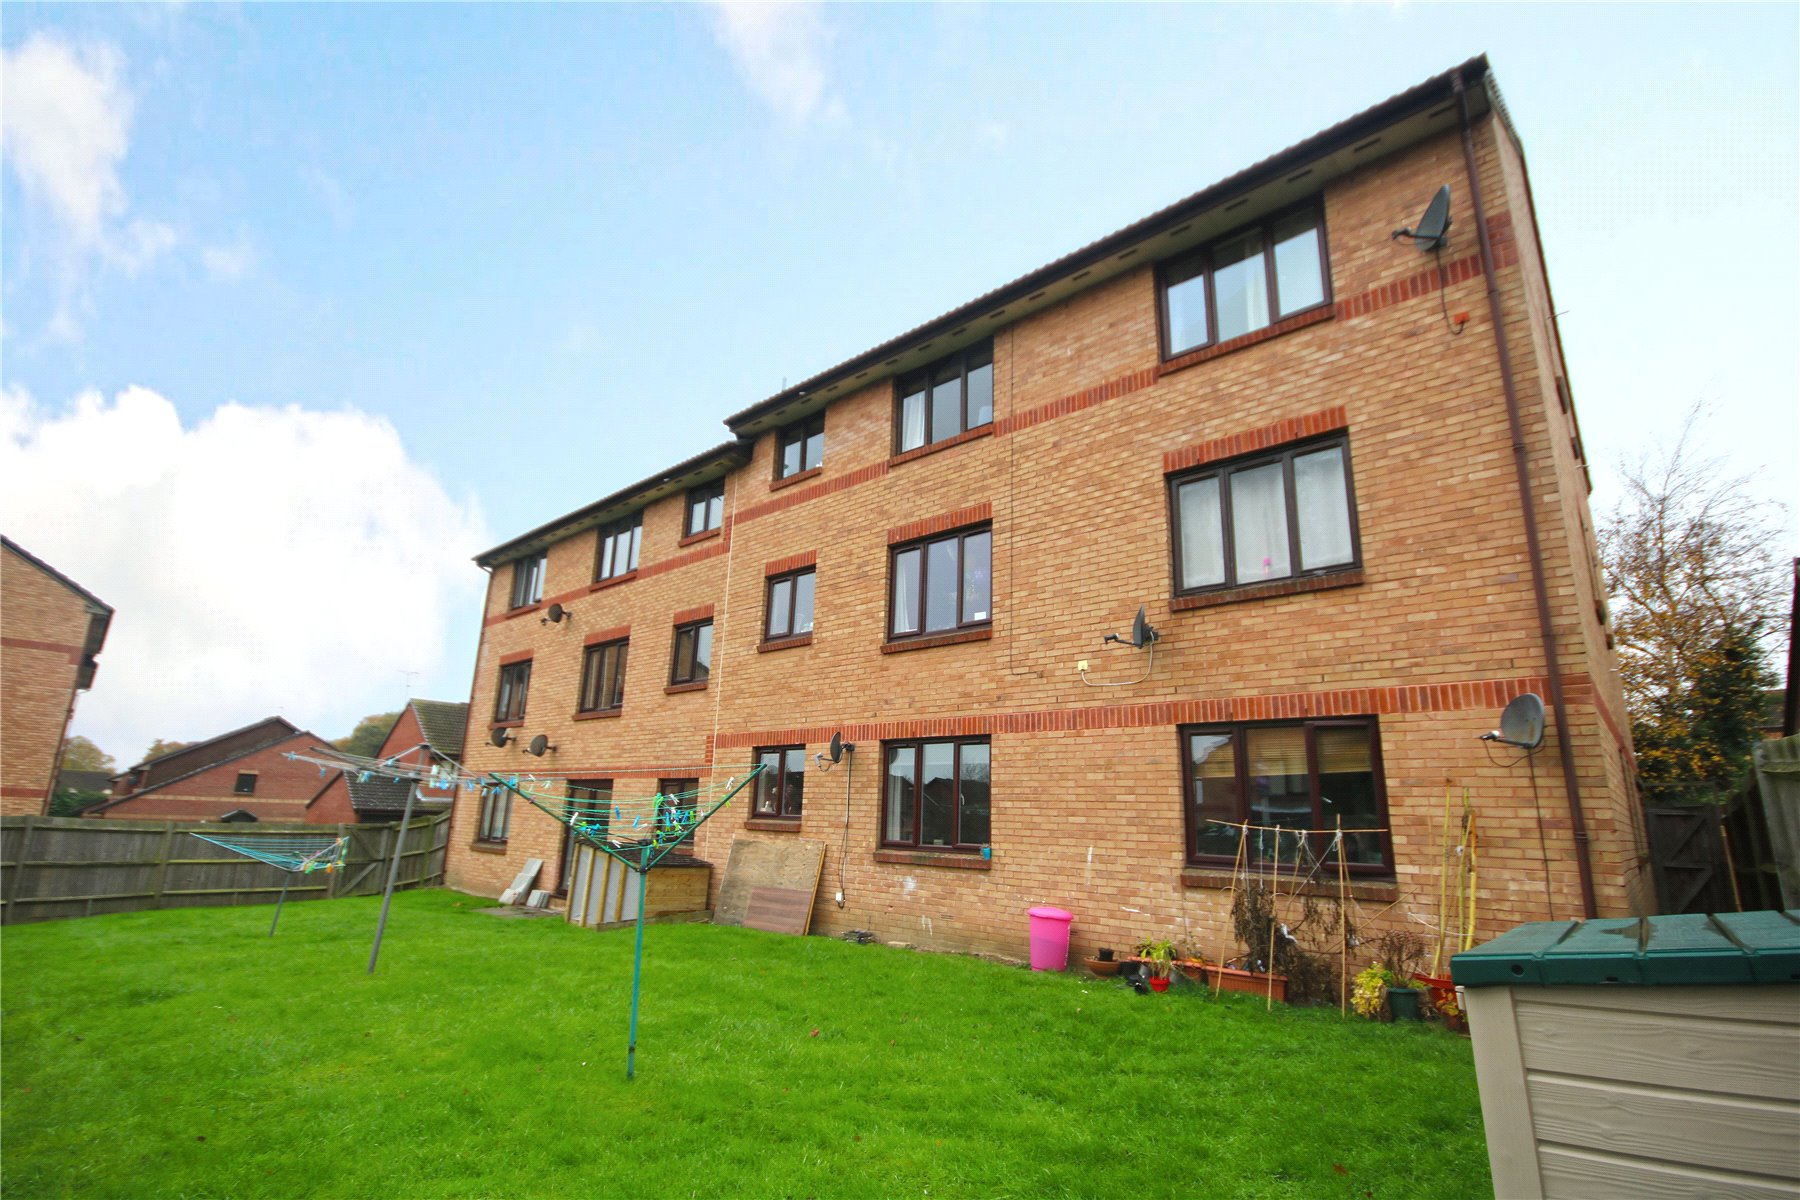 2 Bedrooms Apartment Flat for sale in Tucker Road, Ottershaw, Chertsey, Surrey, KT16